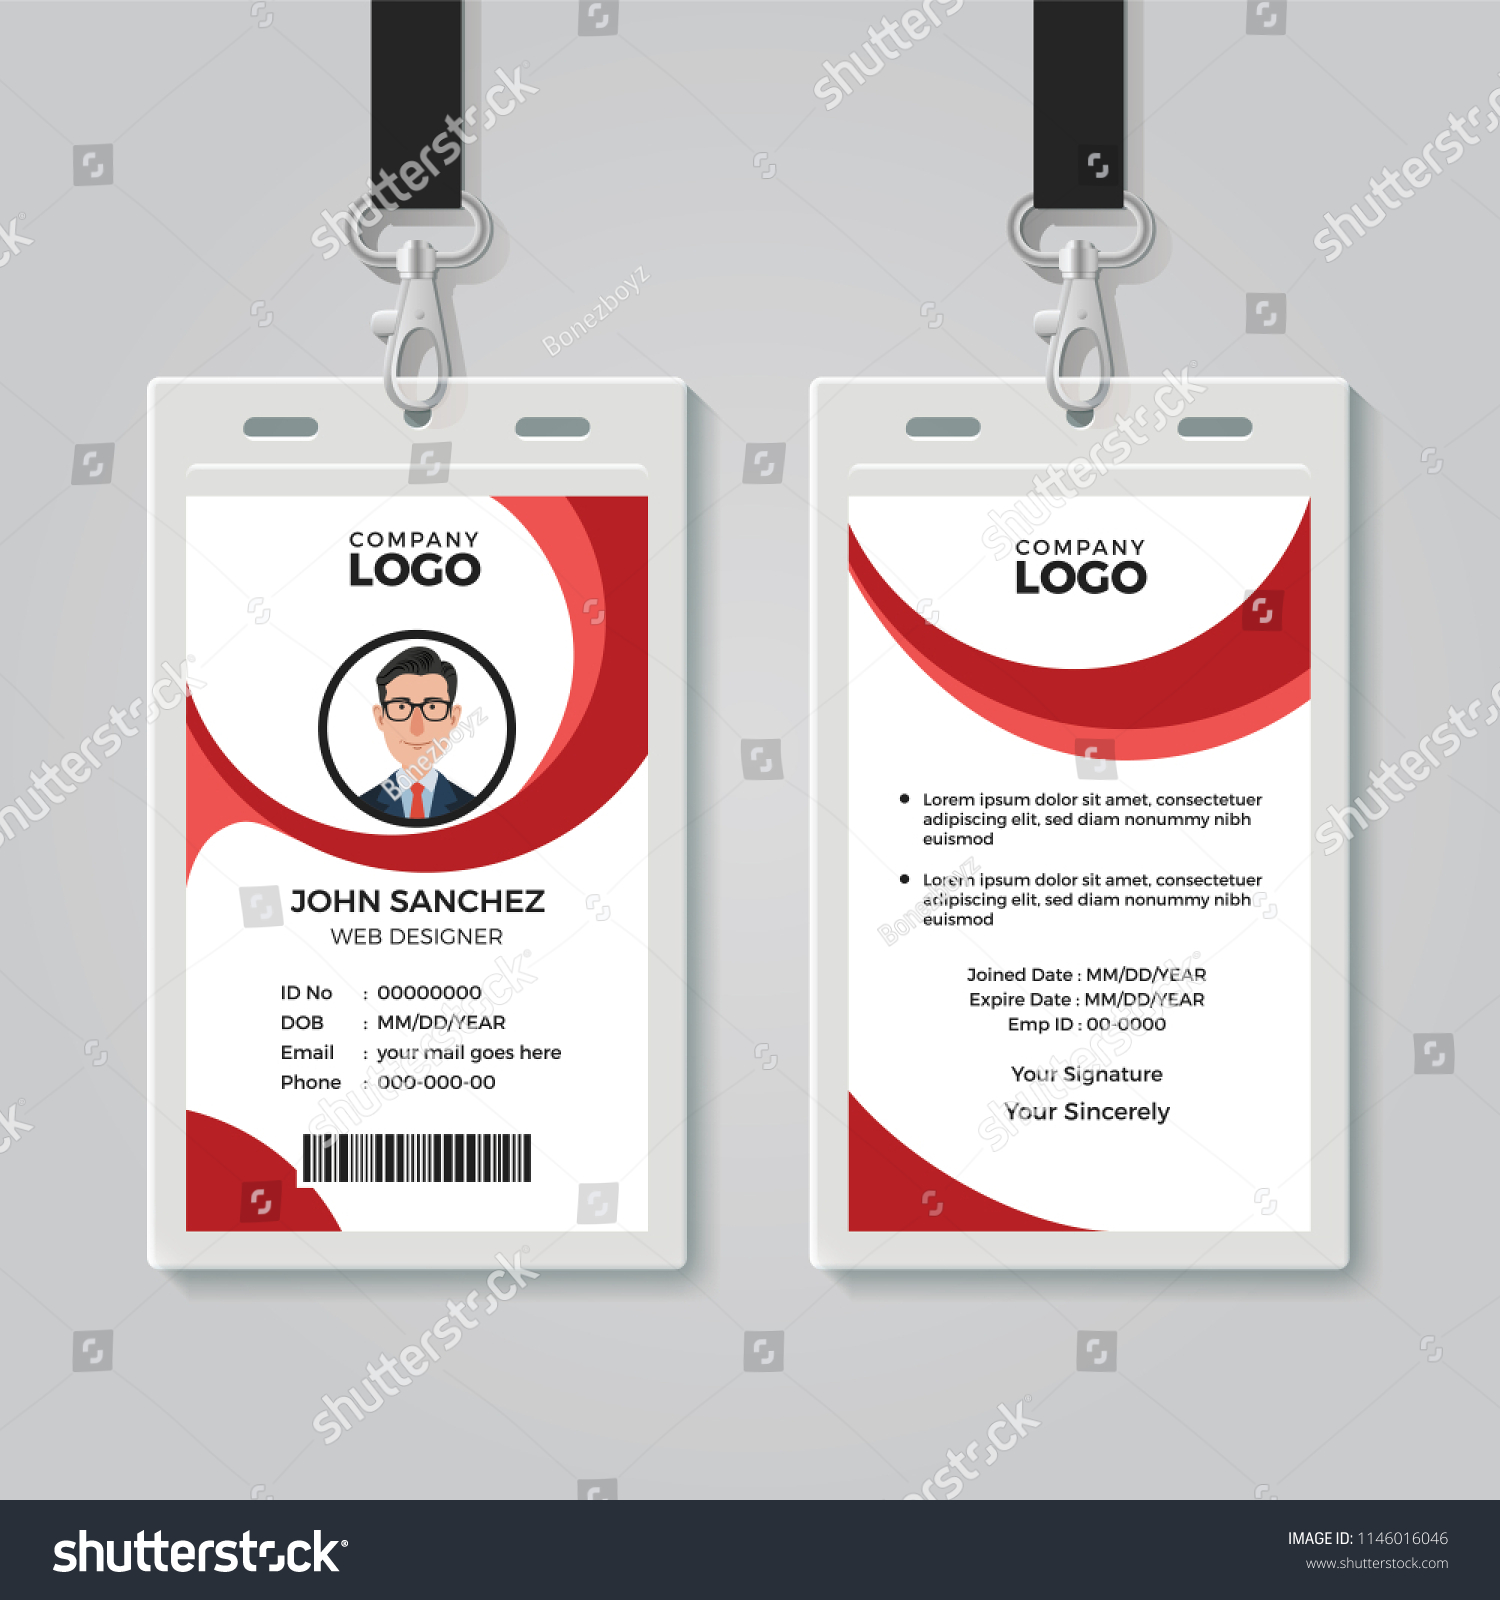 Creative Office Identity Card Template Stock Vector (Royalty Free ...